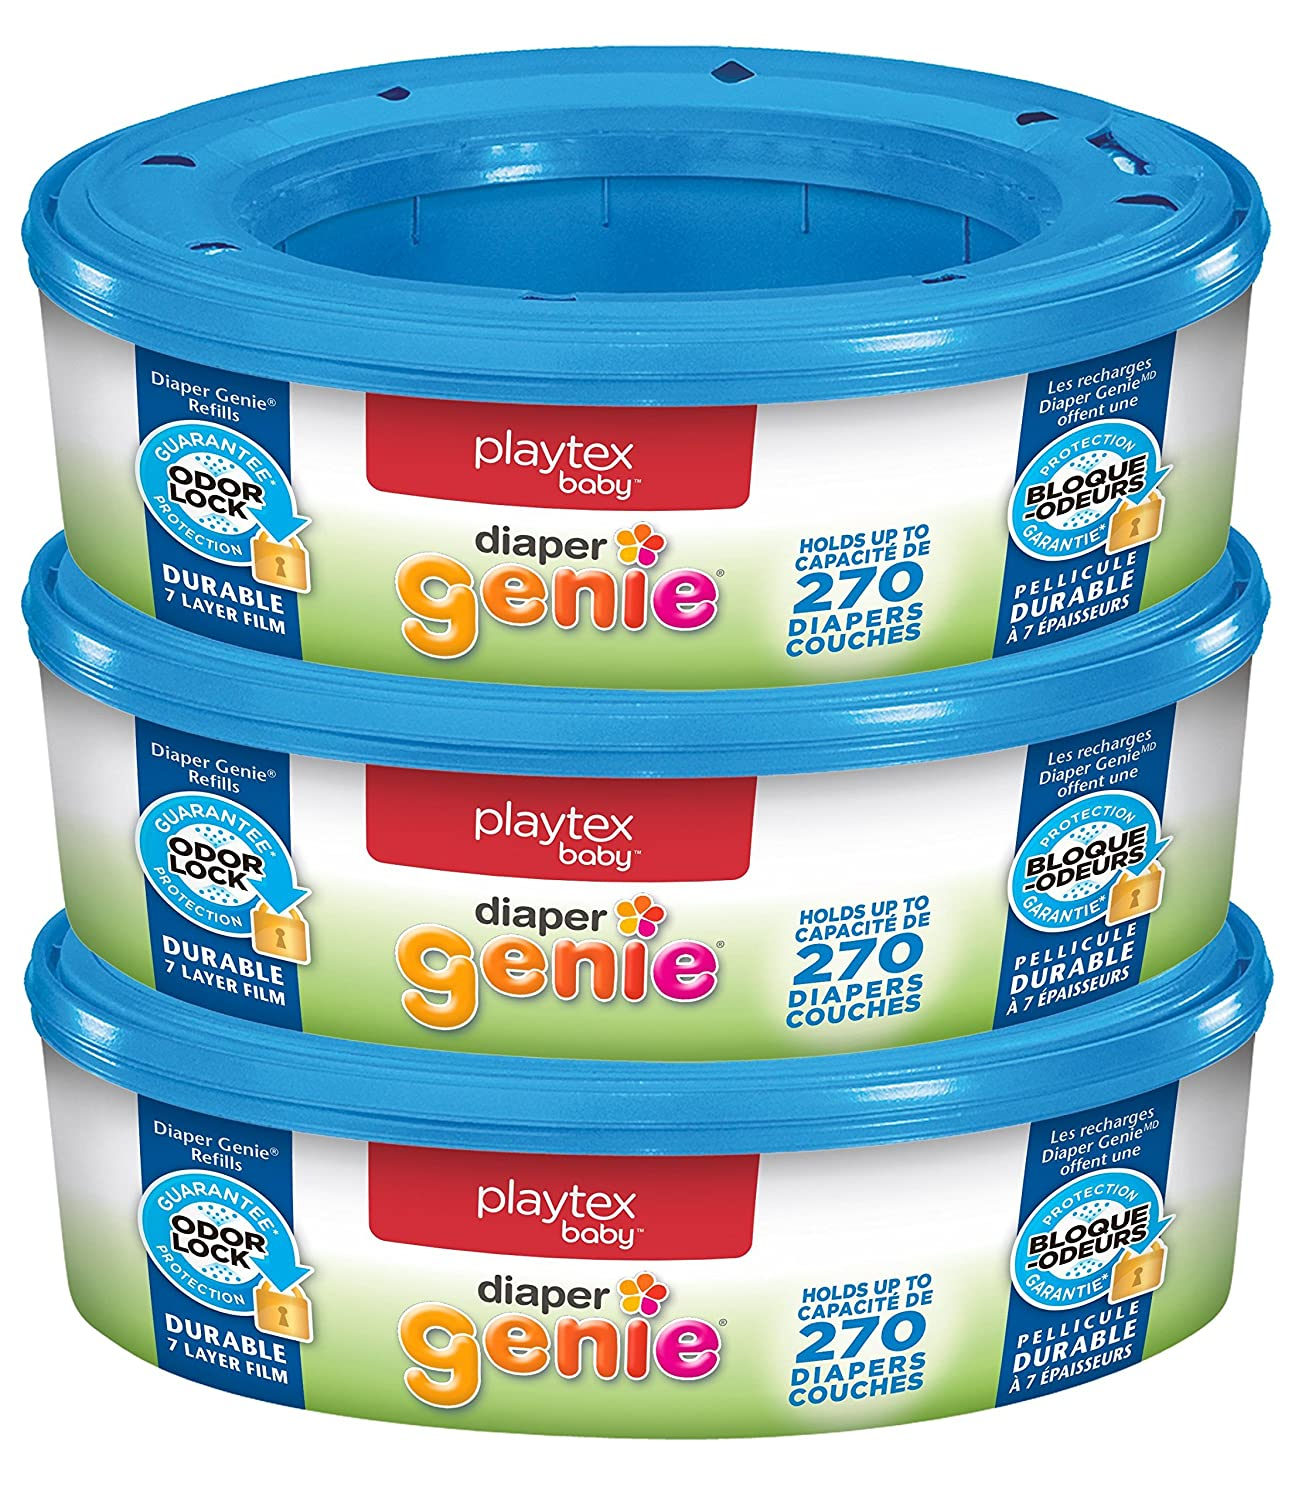 Playtex Diaper Genie Refill Bags, Ideal for Diaper Genie